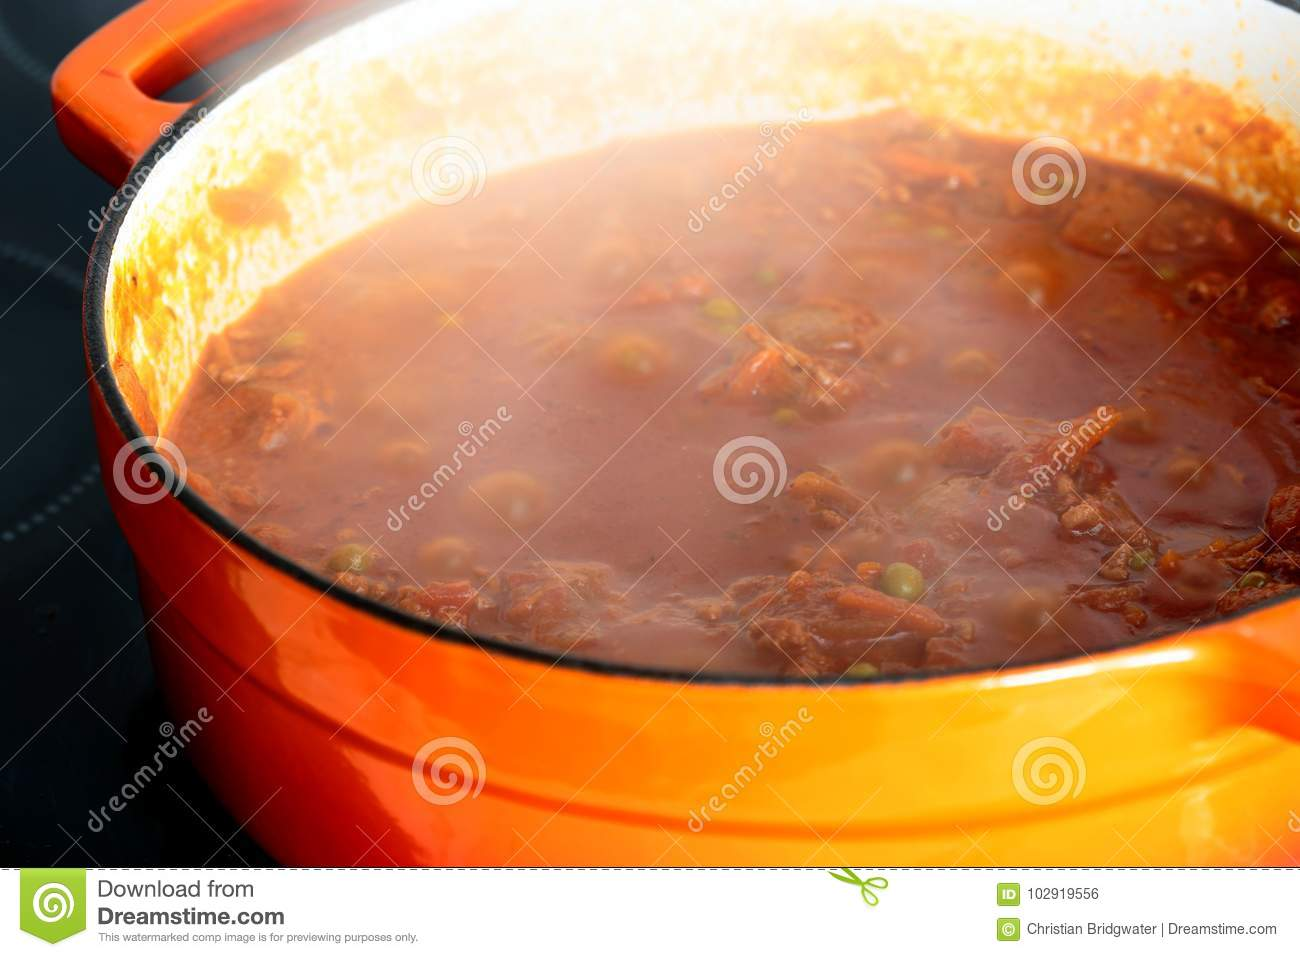 Download Beef Mince With Tomato And Peas In A Casserole Pot Stock Photo - Image of dish, ingredient: 102919556